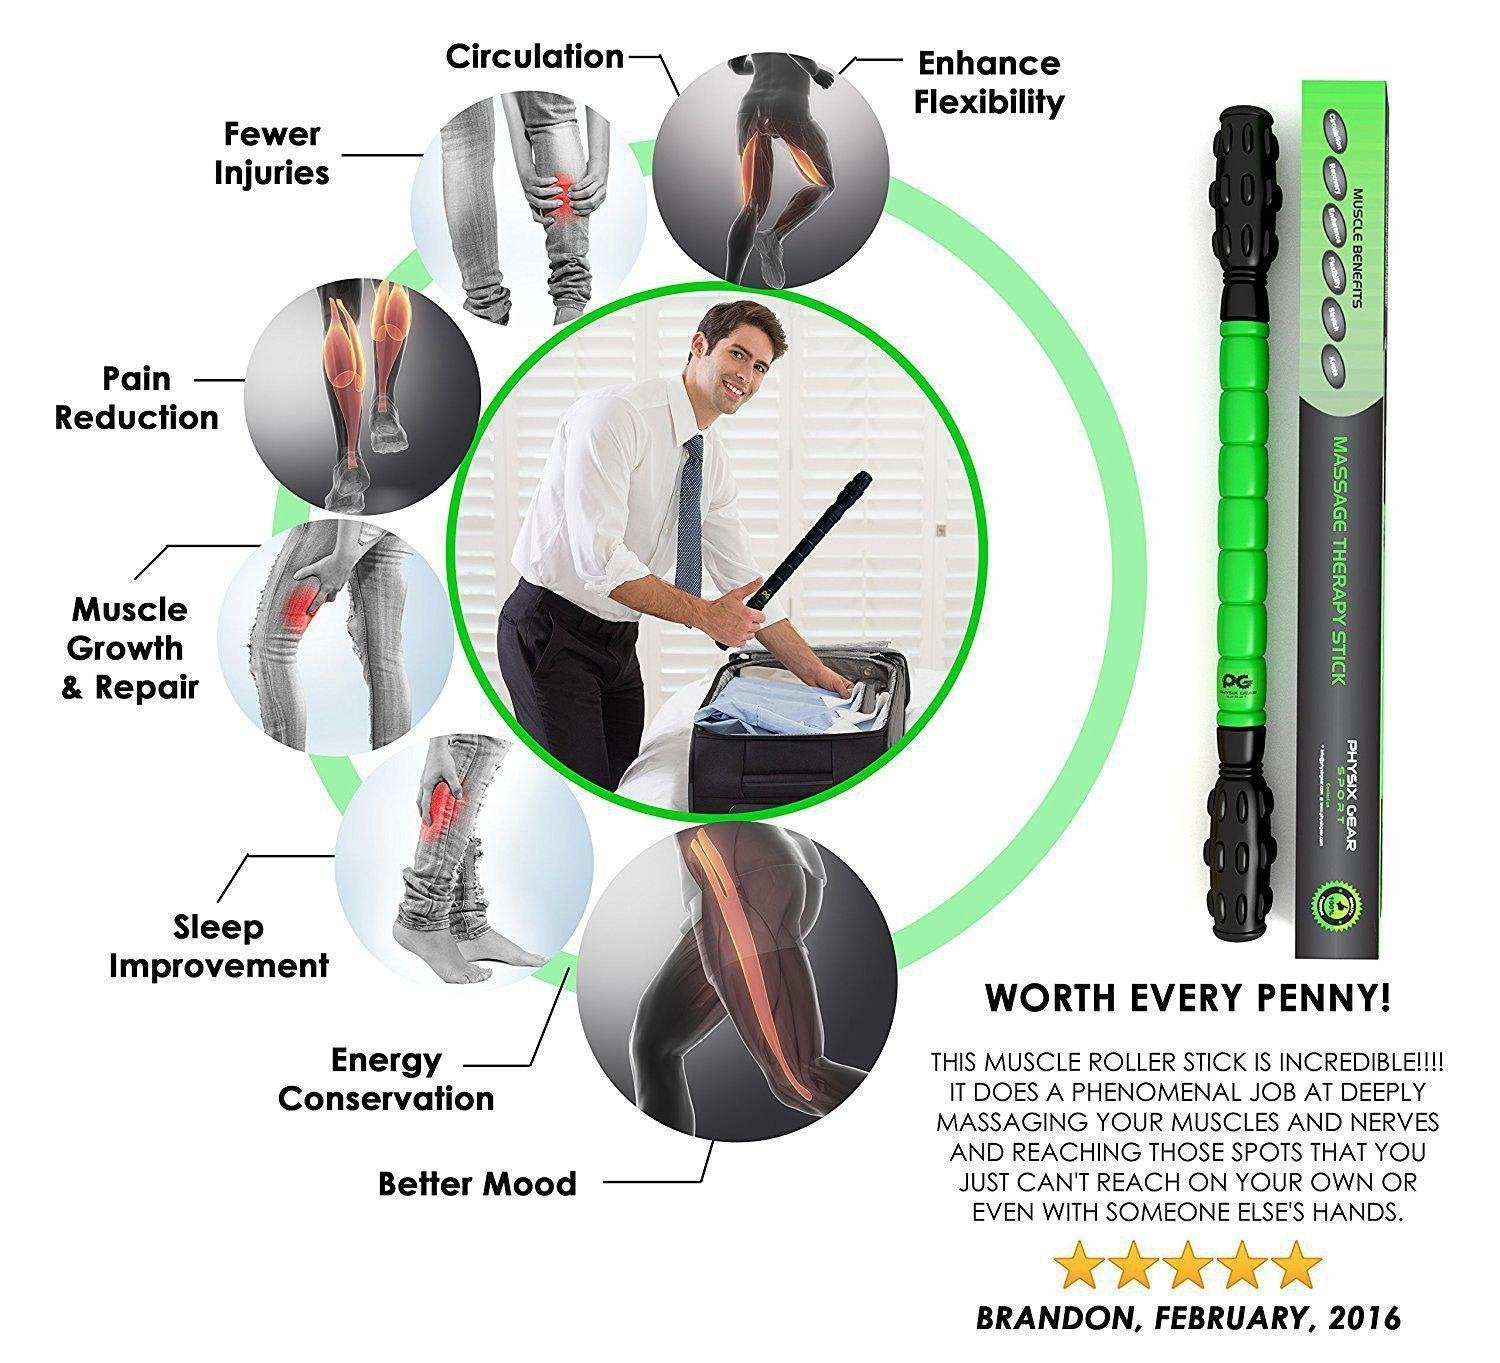 Buy The Best Massage Roller To Strengthen Your Muscles and Flexibility-Physix Gear Sport